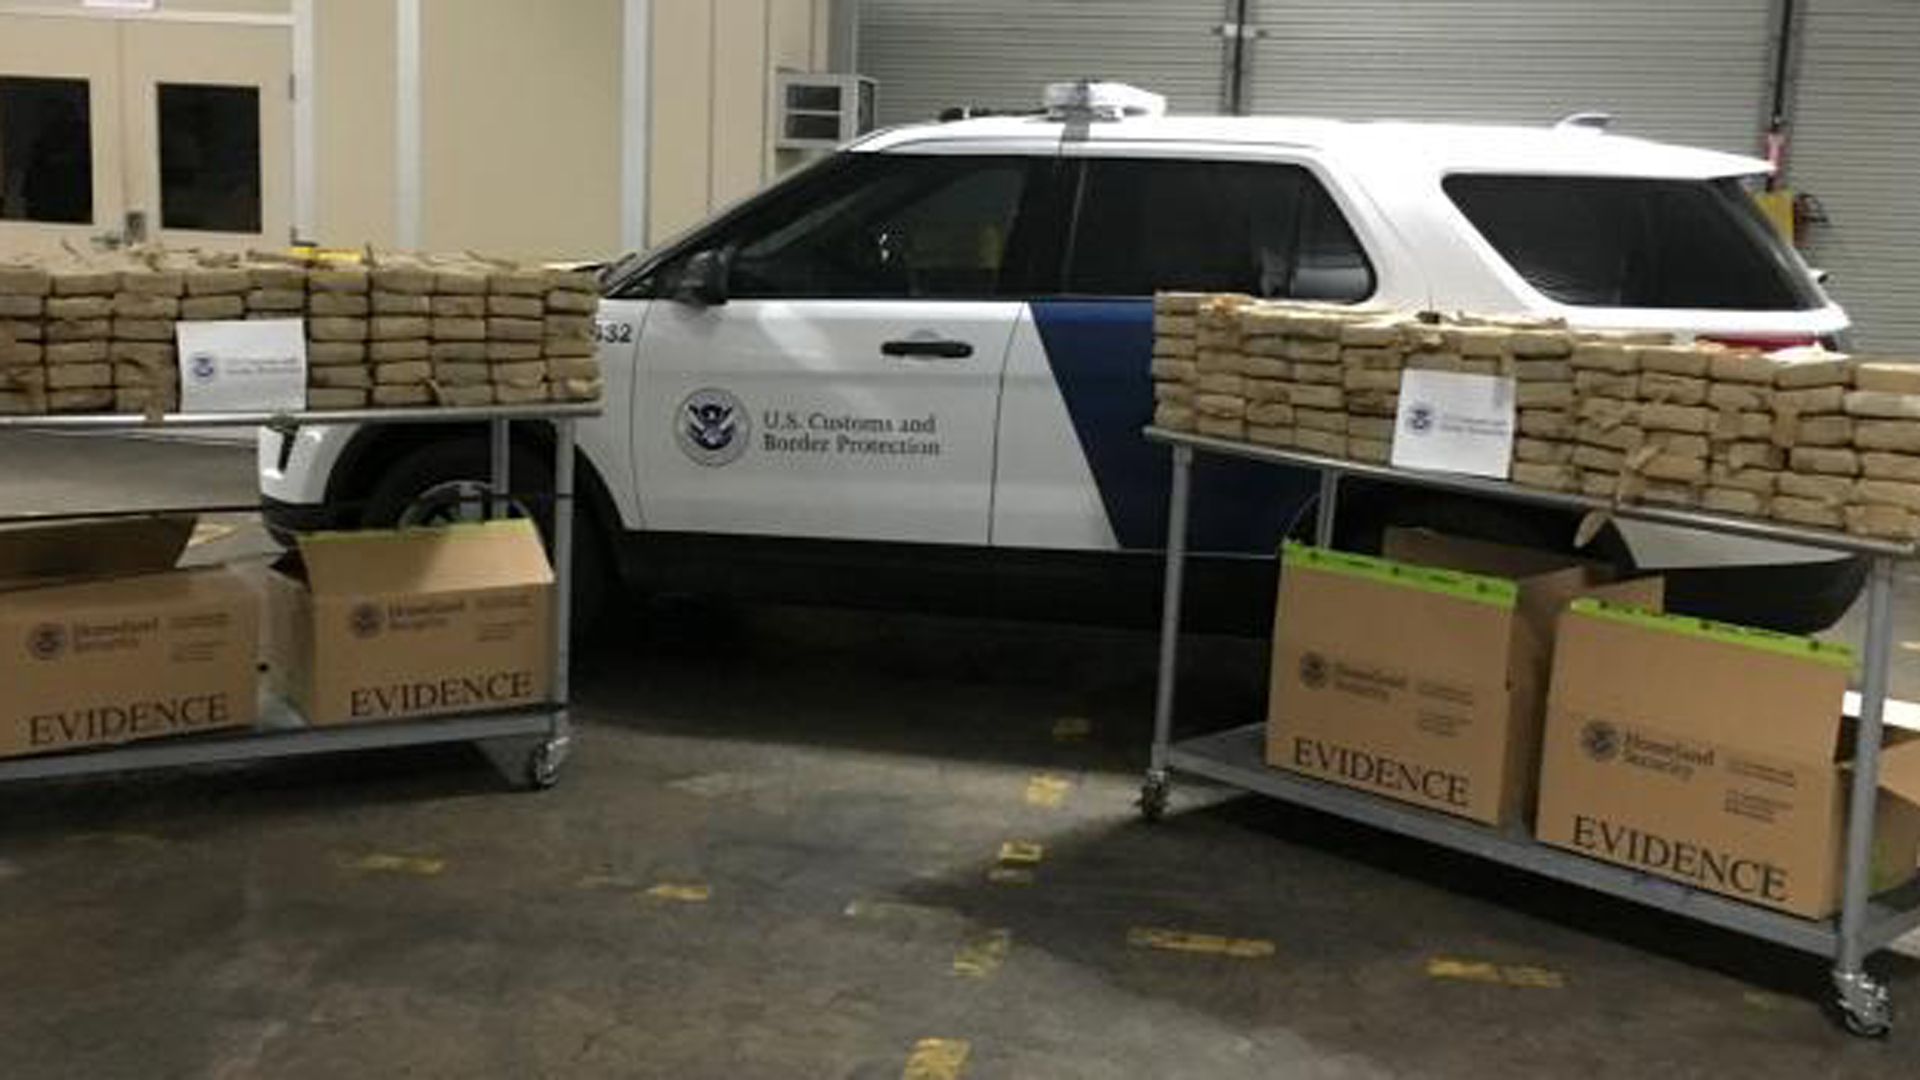 The U.S. Custom and Border Protection released this photo of cocaine seized in a shipping container in Philadelphia on March 19, 2019.